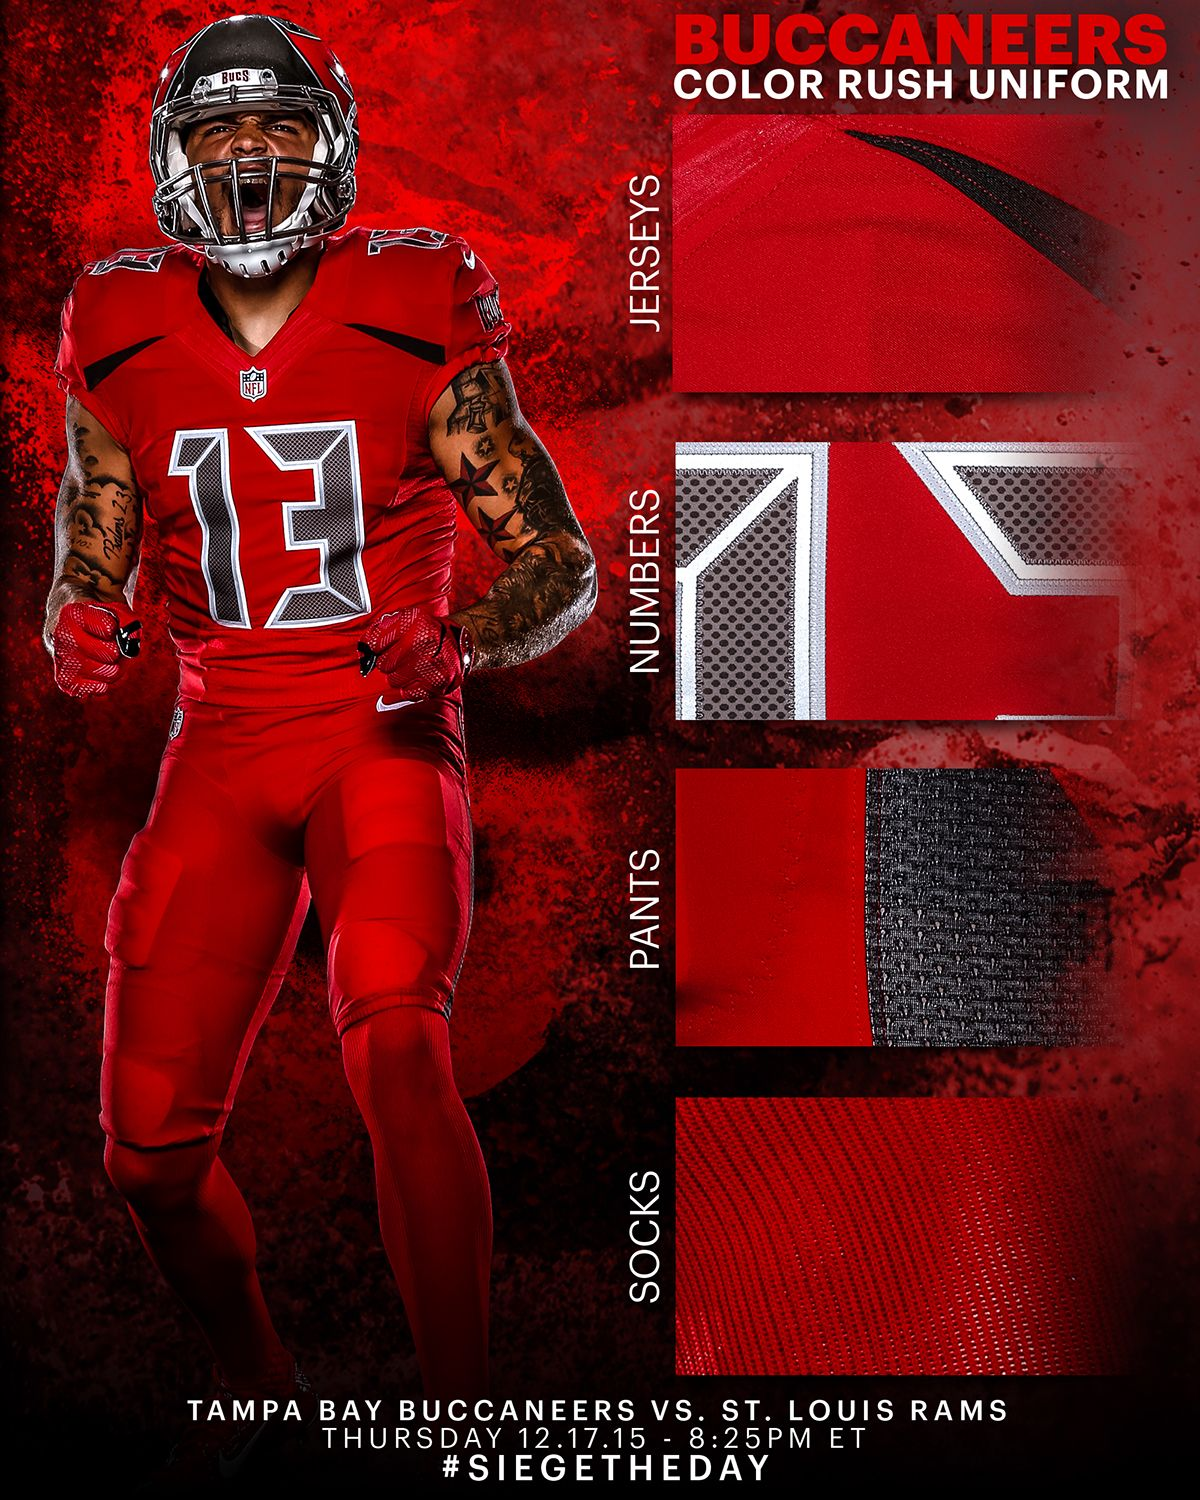 Buccaneers Color Rush Uniform Graphic On Behance Color Rush Uniforms Nfl Color Rush Uniforms Nfl Outfits